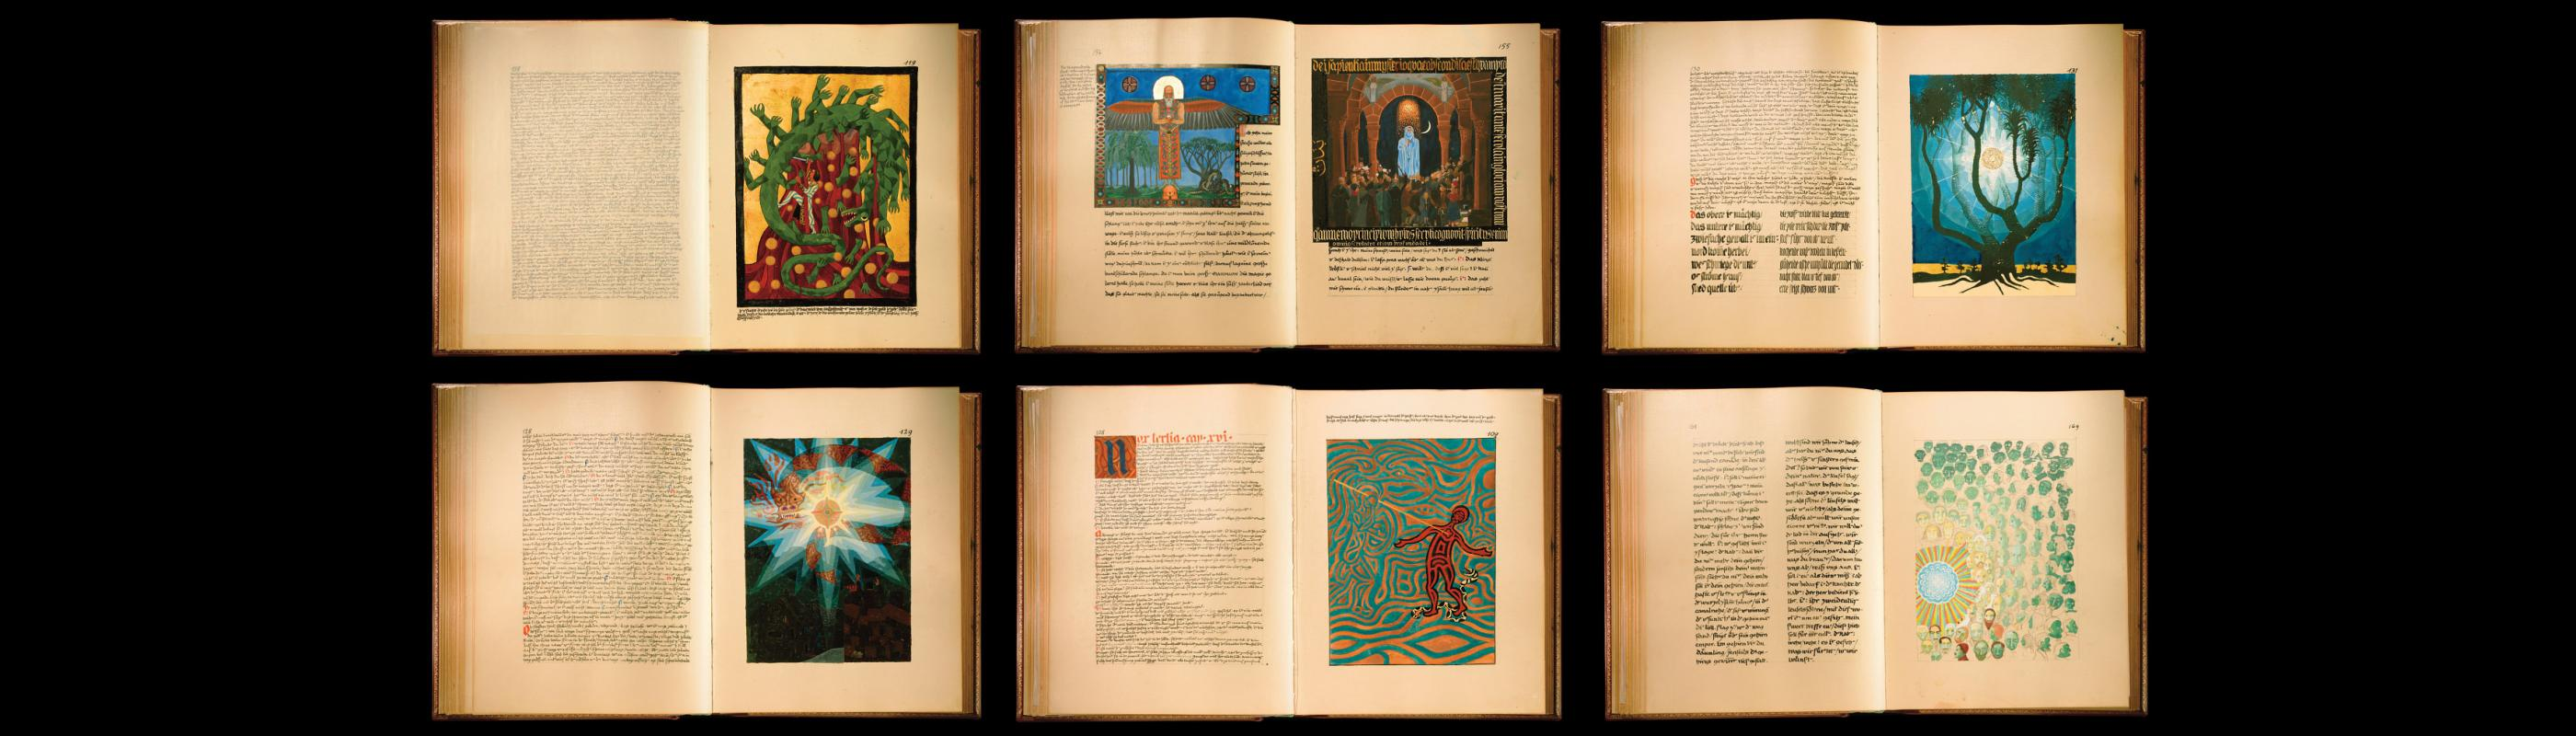 Pages from Carl Jung's Red Book